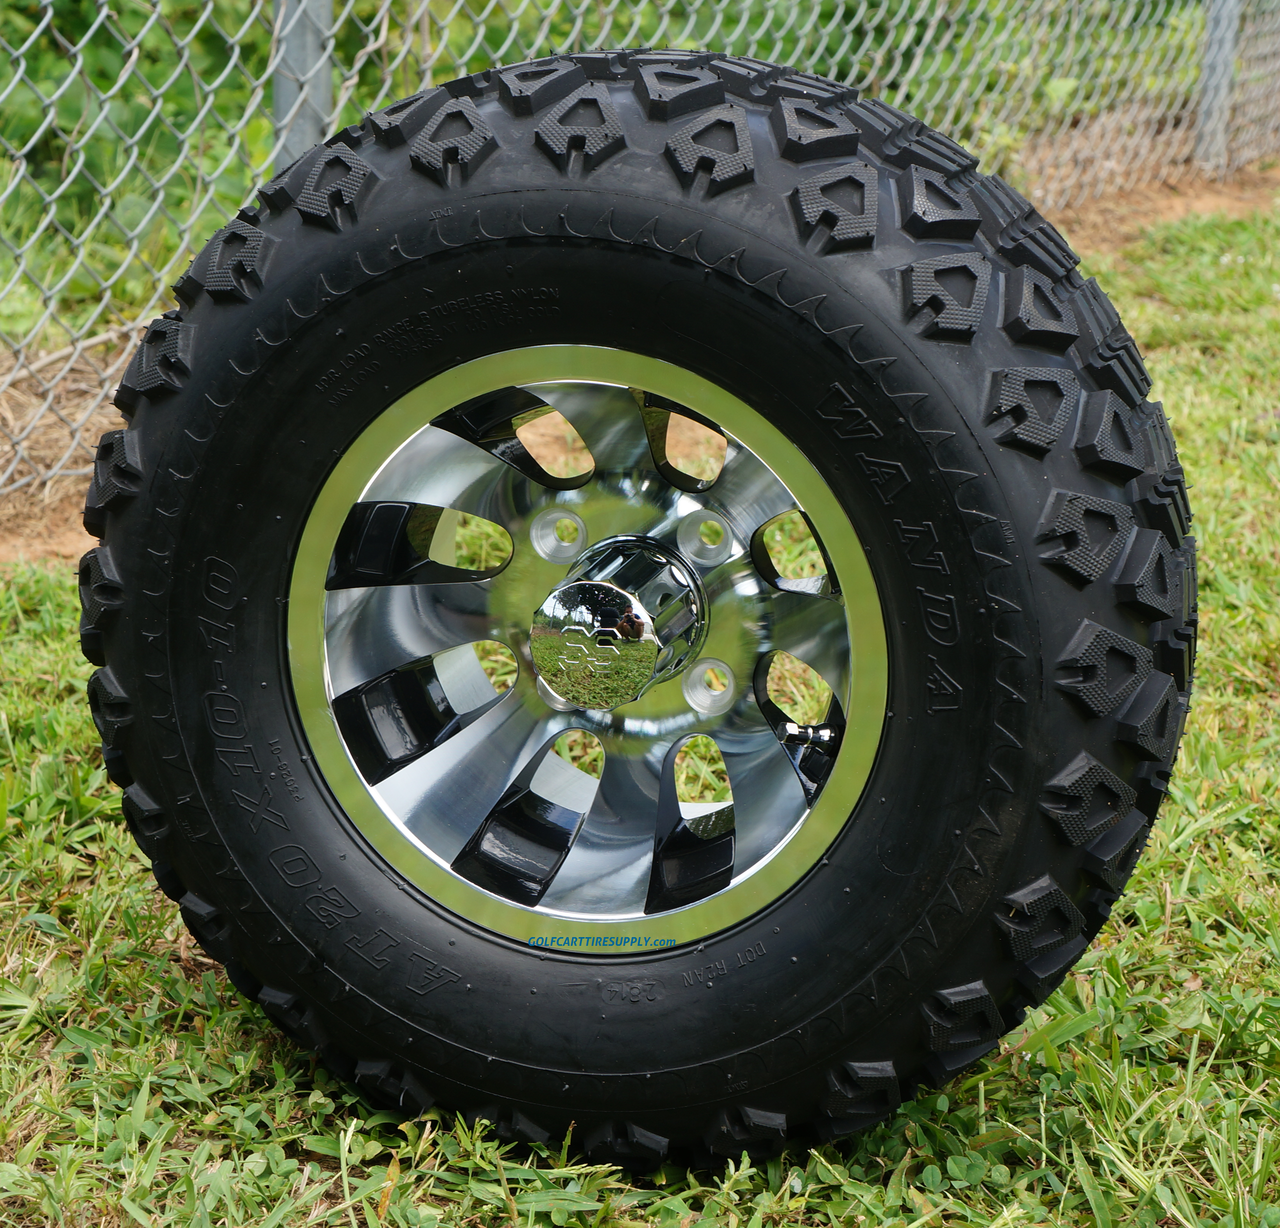 10 Inch Wheels For Golf Cart : Revolver quot golf cart wheels and dot all